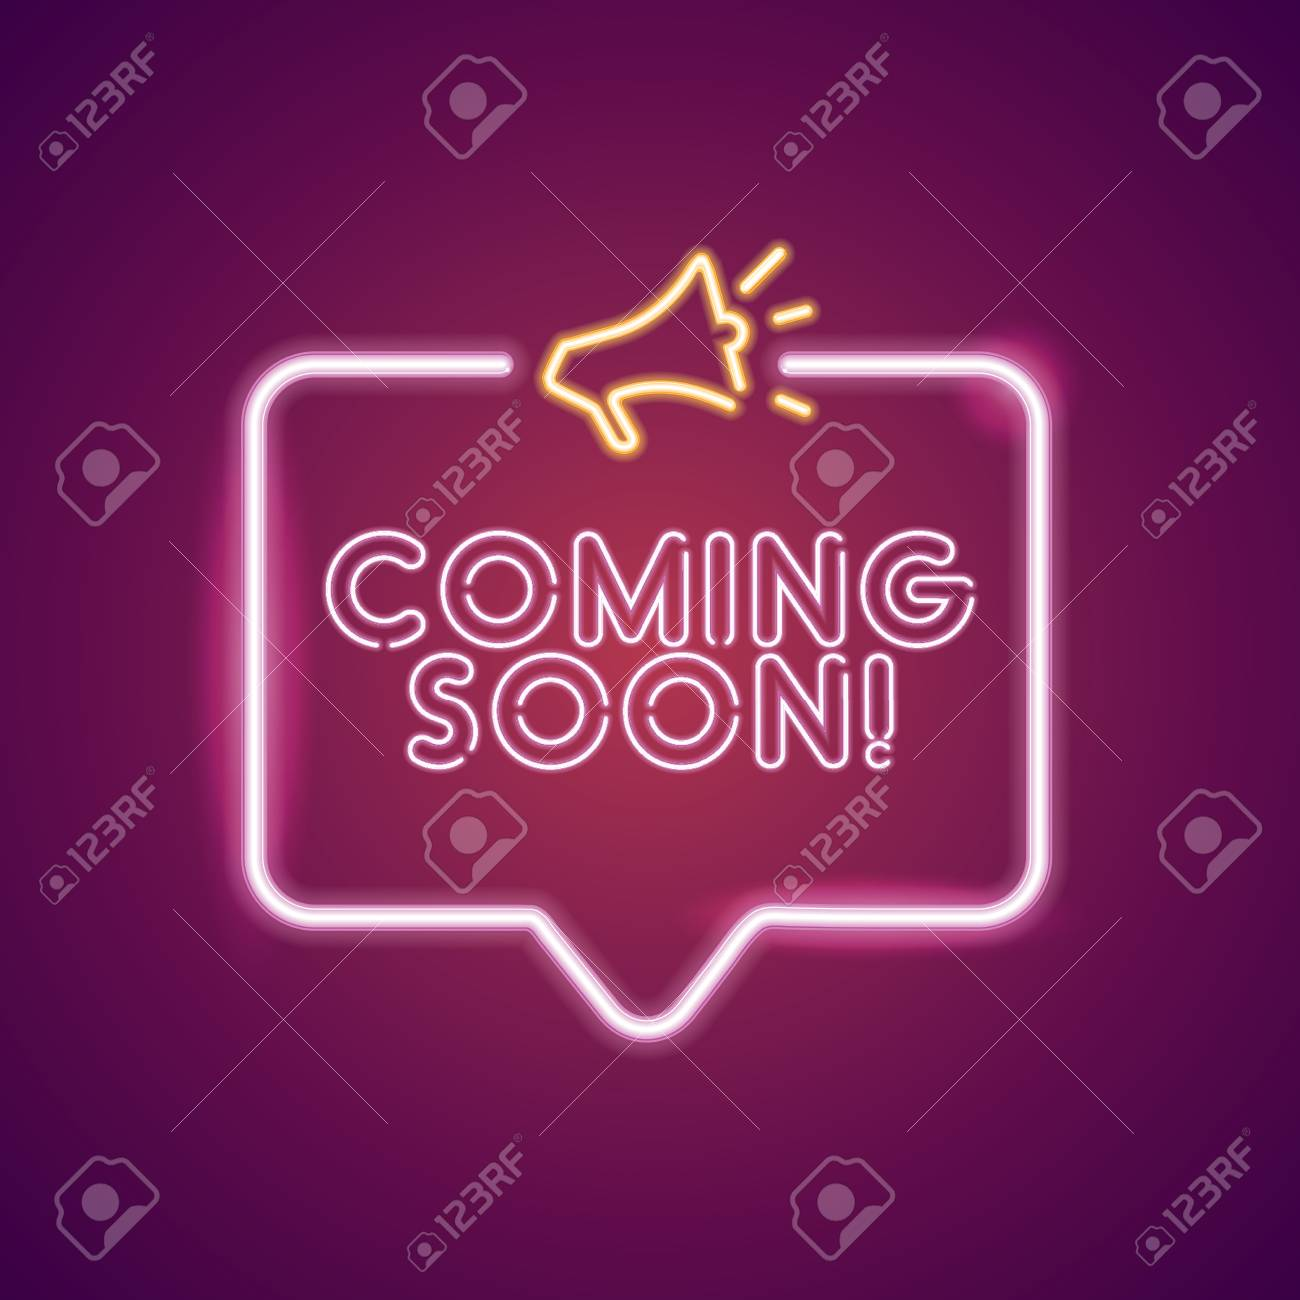 Coming Soon Neon Light Announcement Poster Template Royalty Free Cliparts Vectors And Stock Illustration Image 126867218